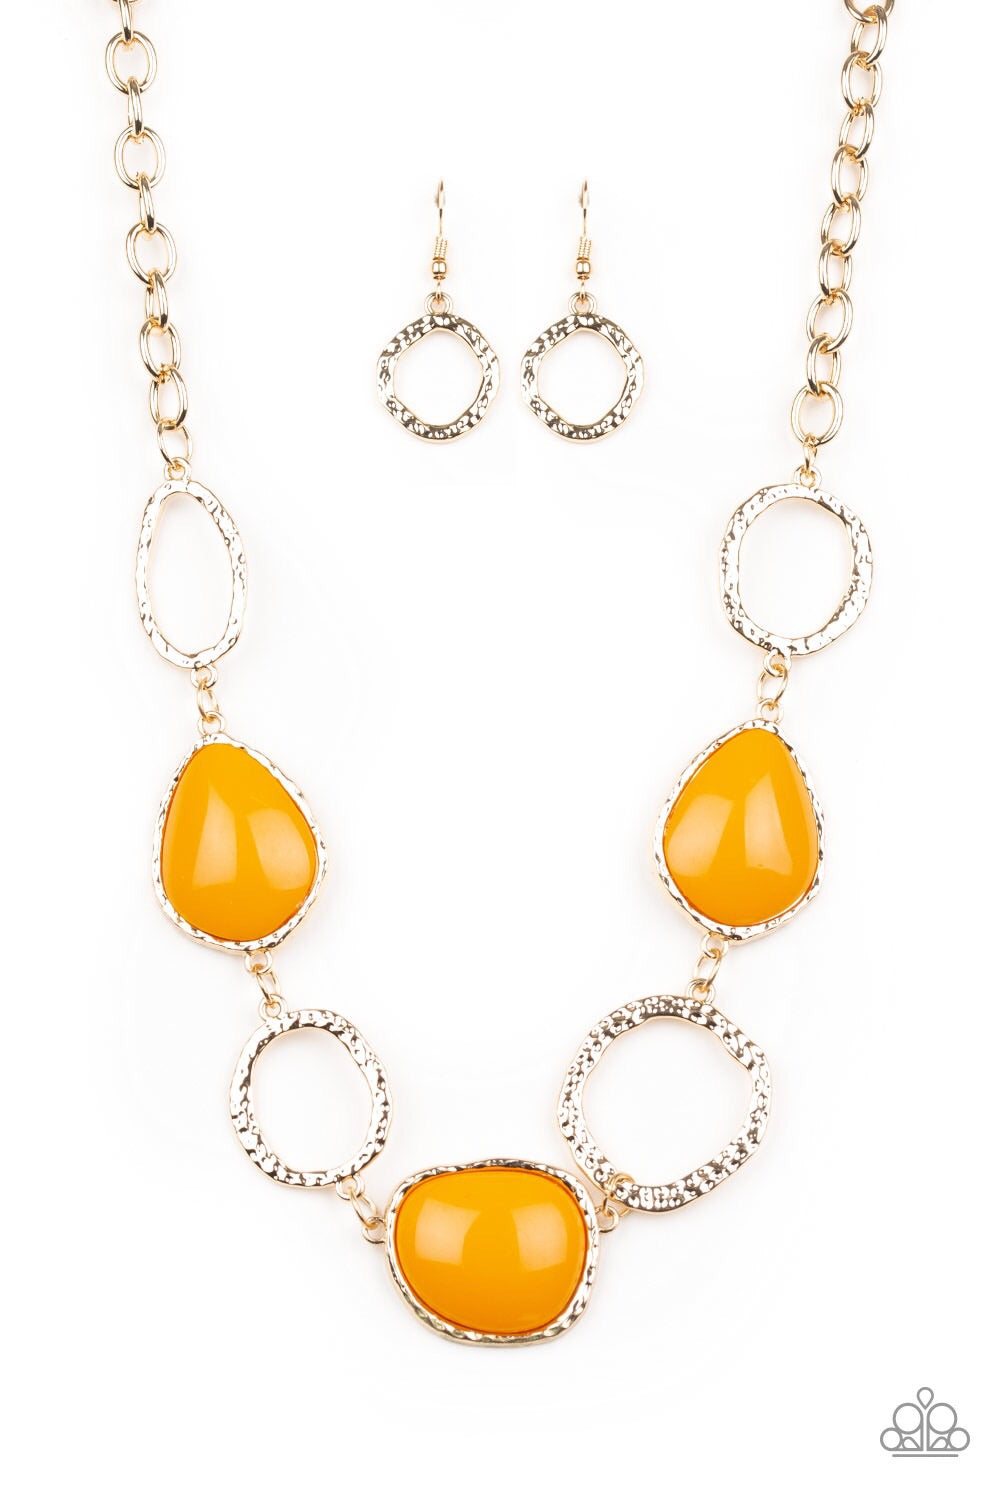 Paparazzi Haute Heirloom Necklace - Orange